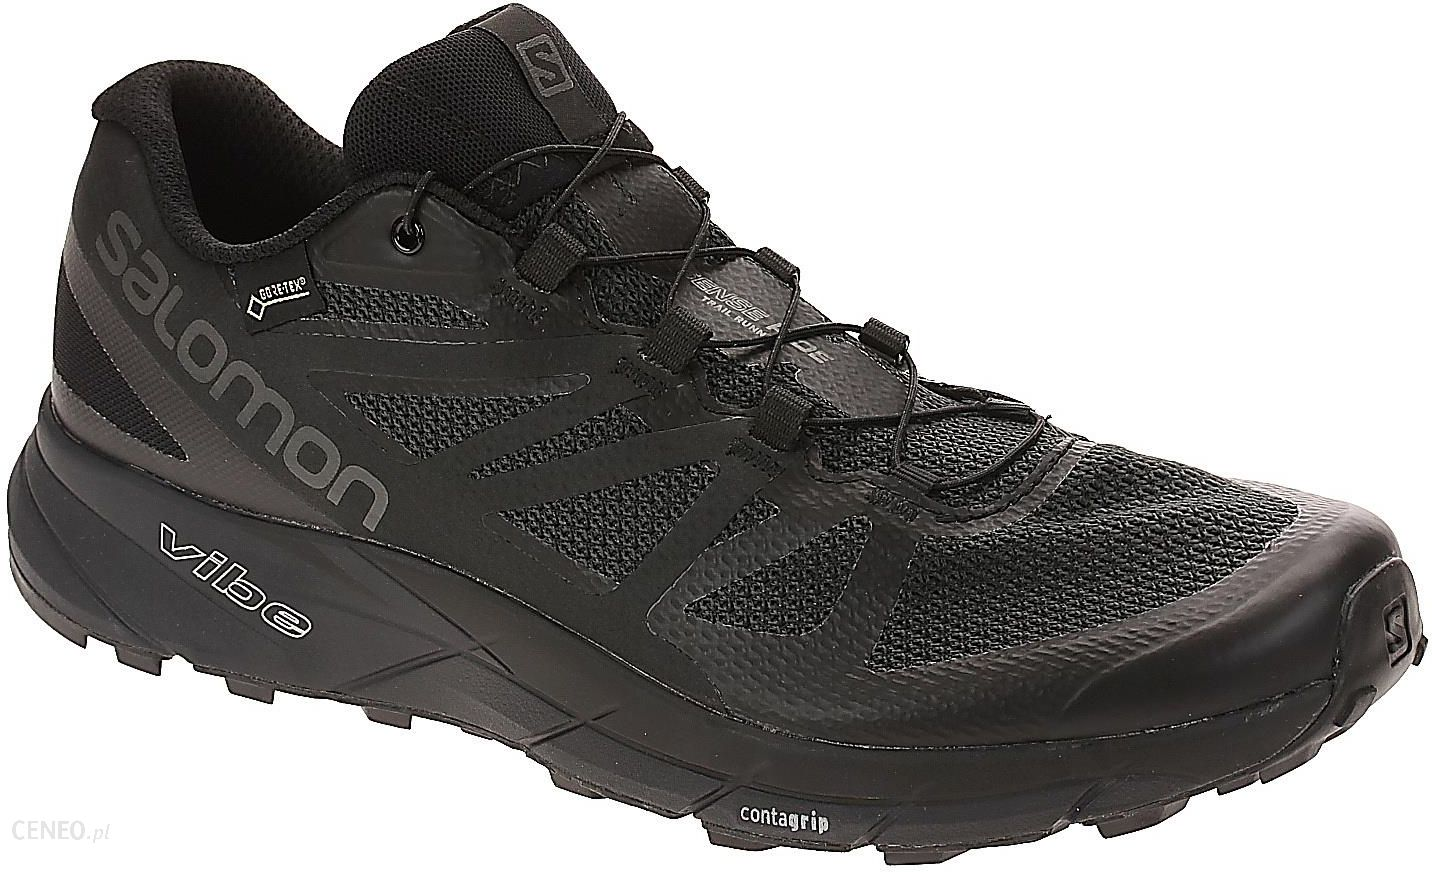 Buty trekkingowe Salomon Sense Ride Gtx Invisible Fit Black Black Magnet Ceny i opinie Ceneo.pl